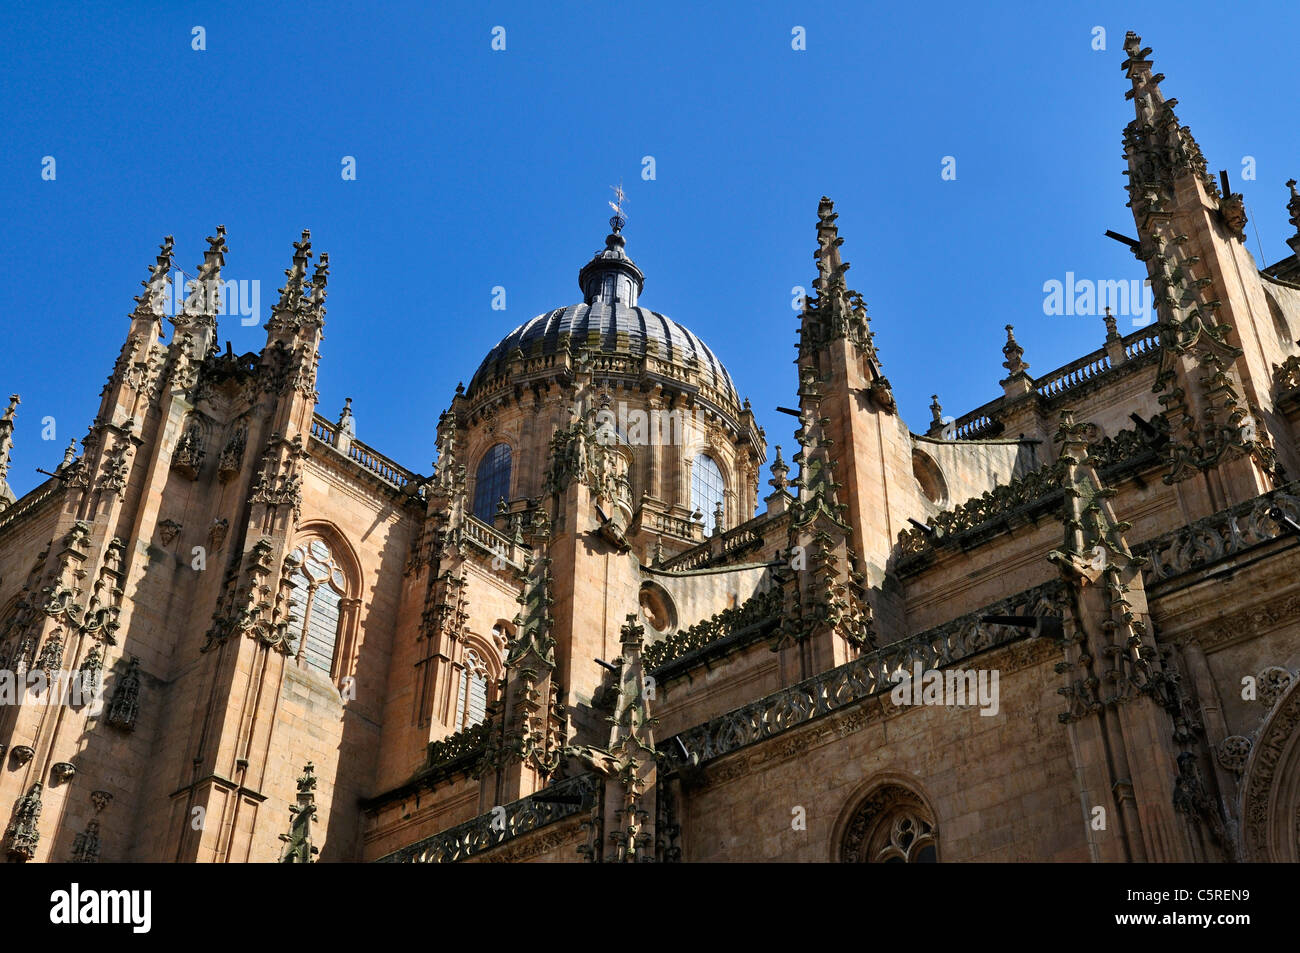 Europe, Spain, Castile and Leon, Salamanca, View of cathedral - Stock Image